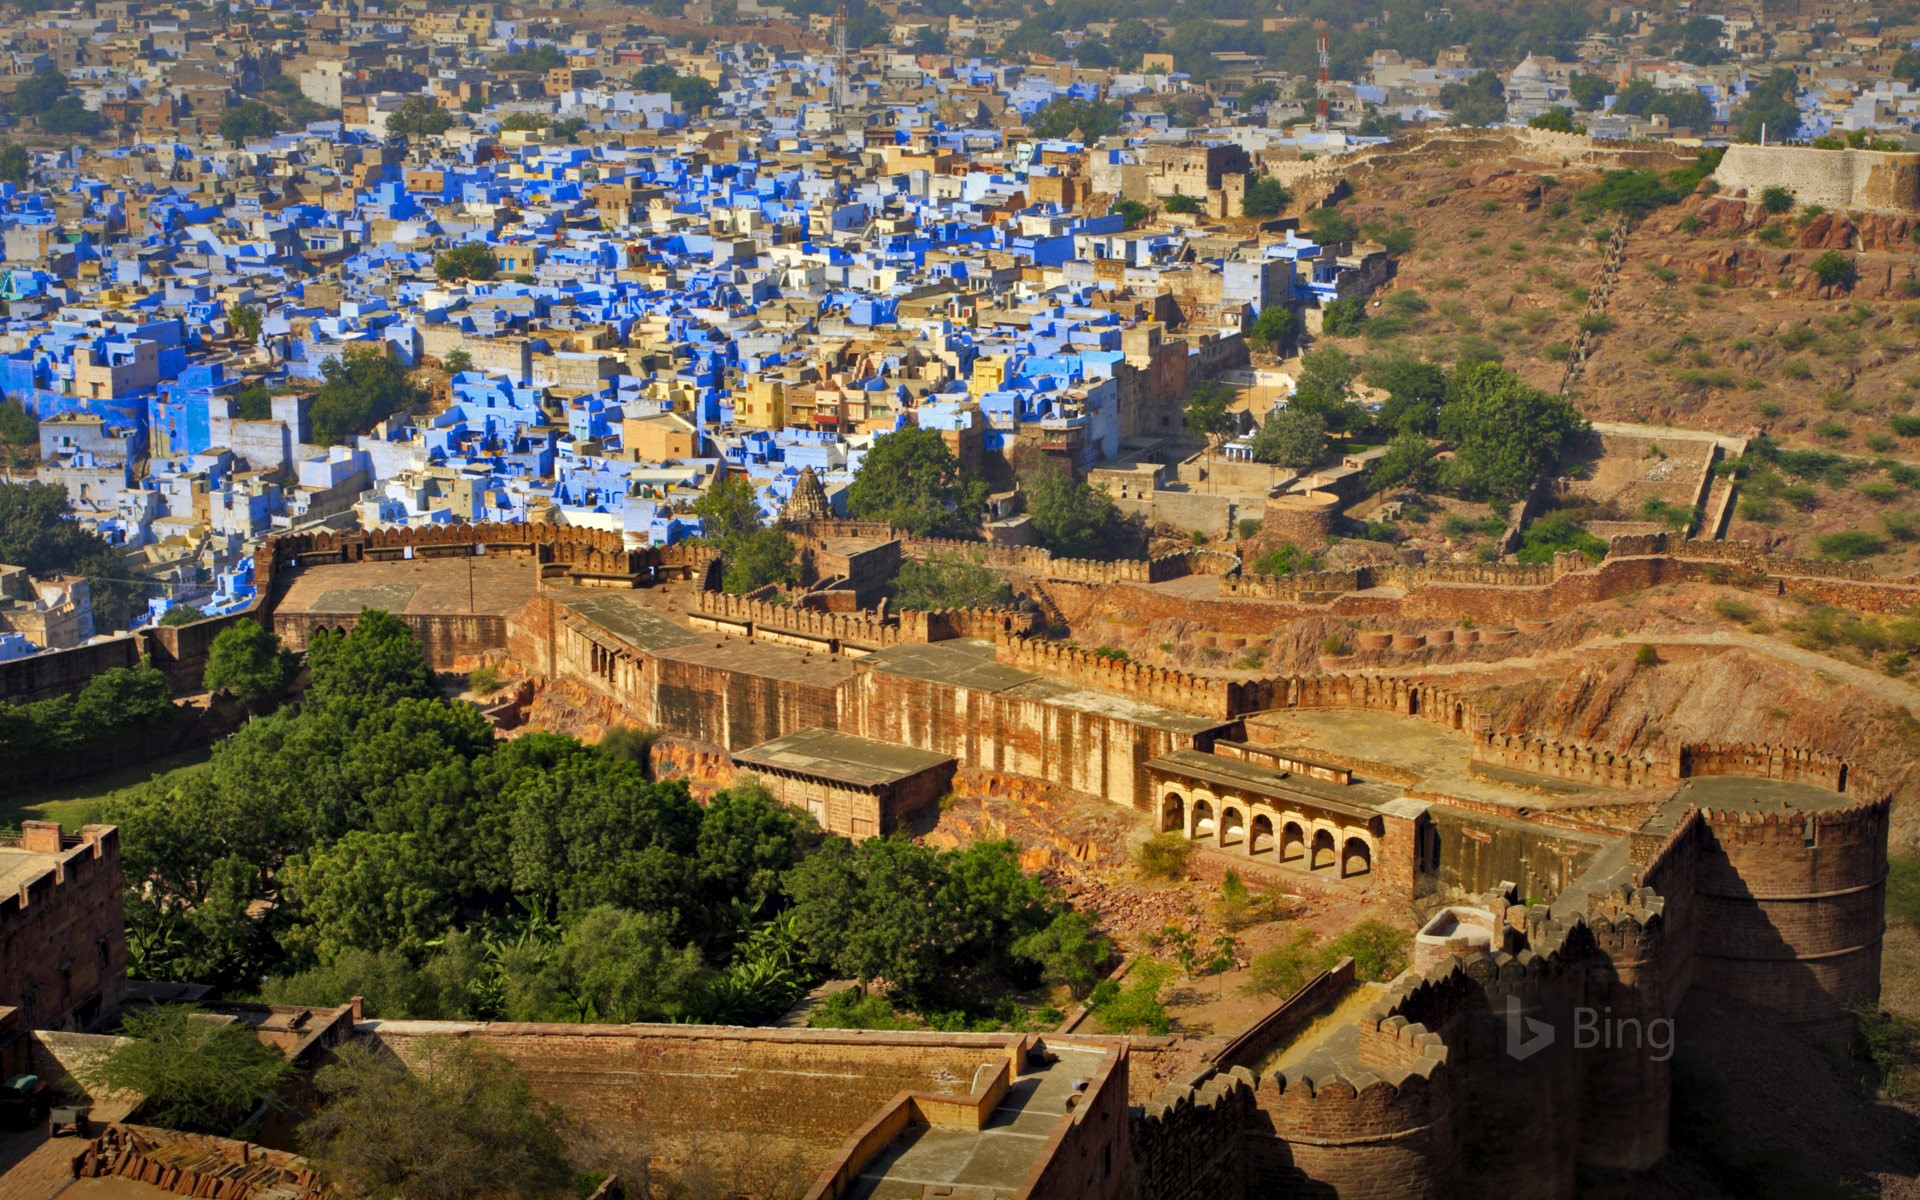 View of the blue city, Jodhpur, from Mehrangarh Fort, Rajasthan, India